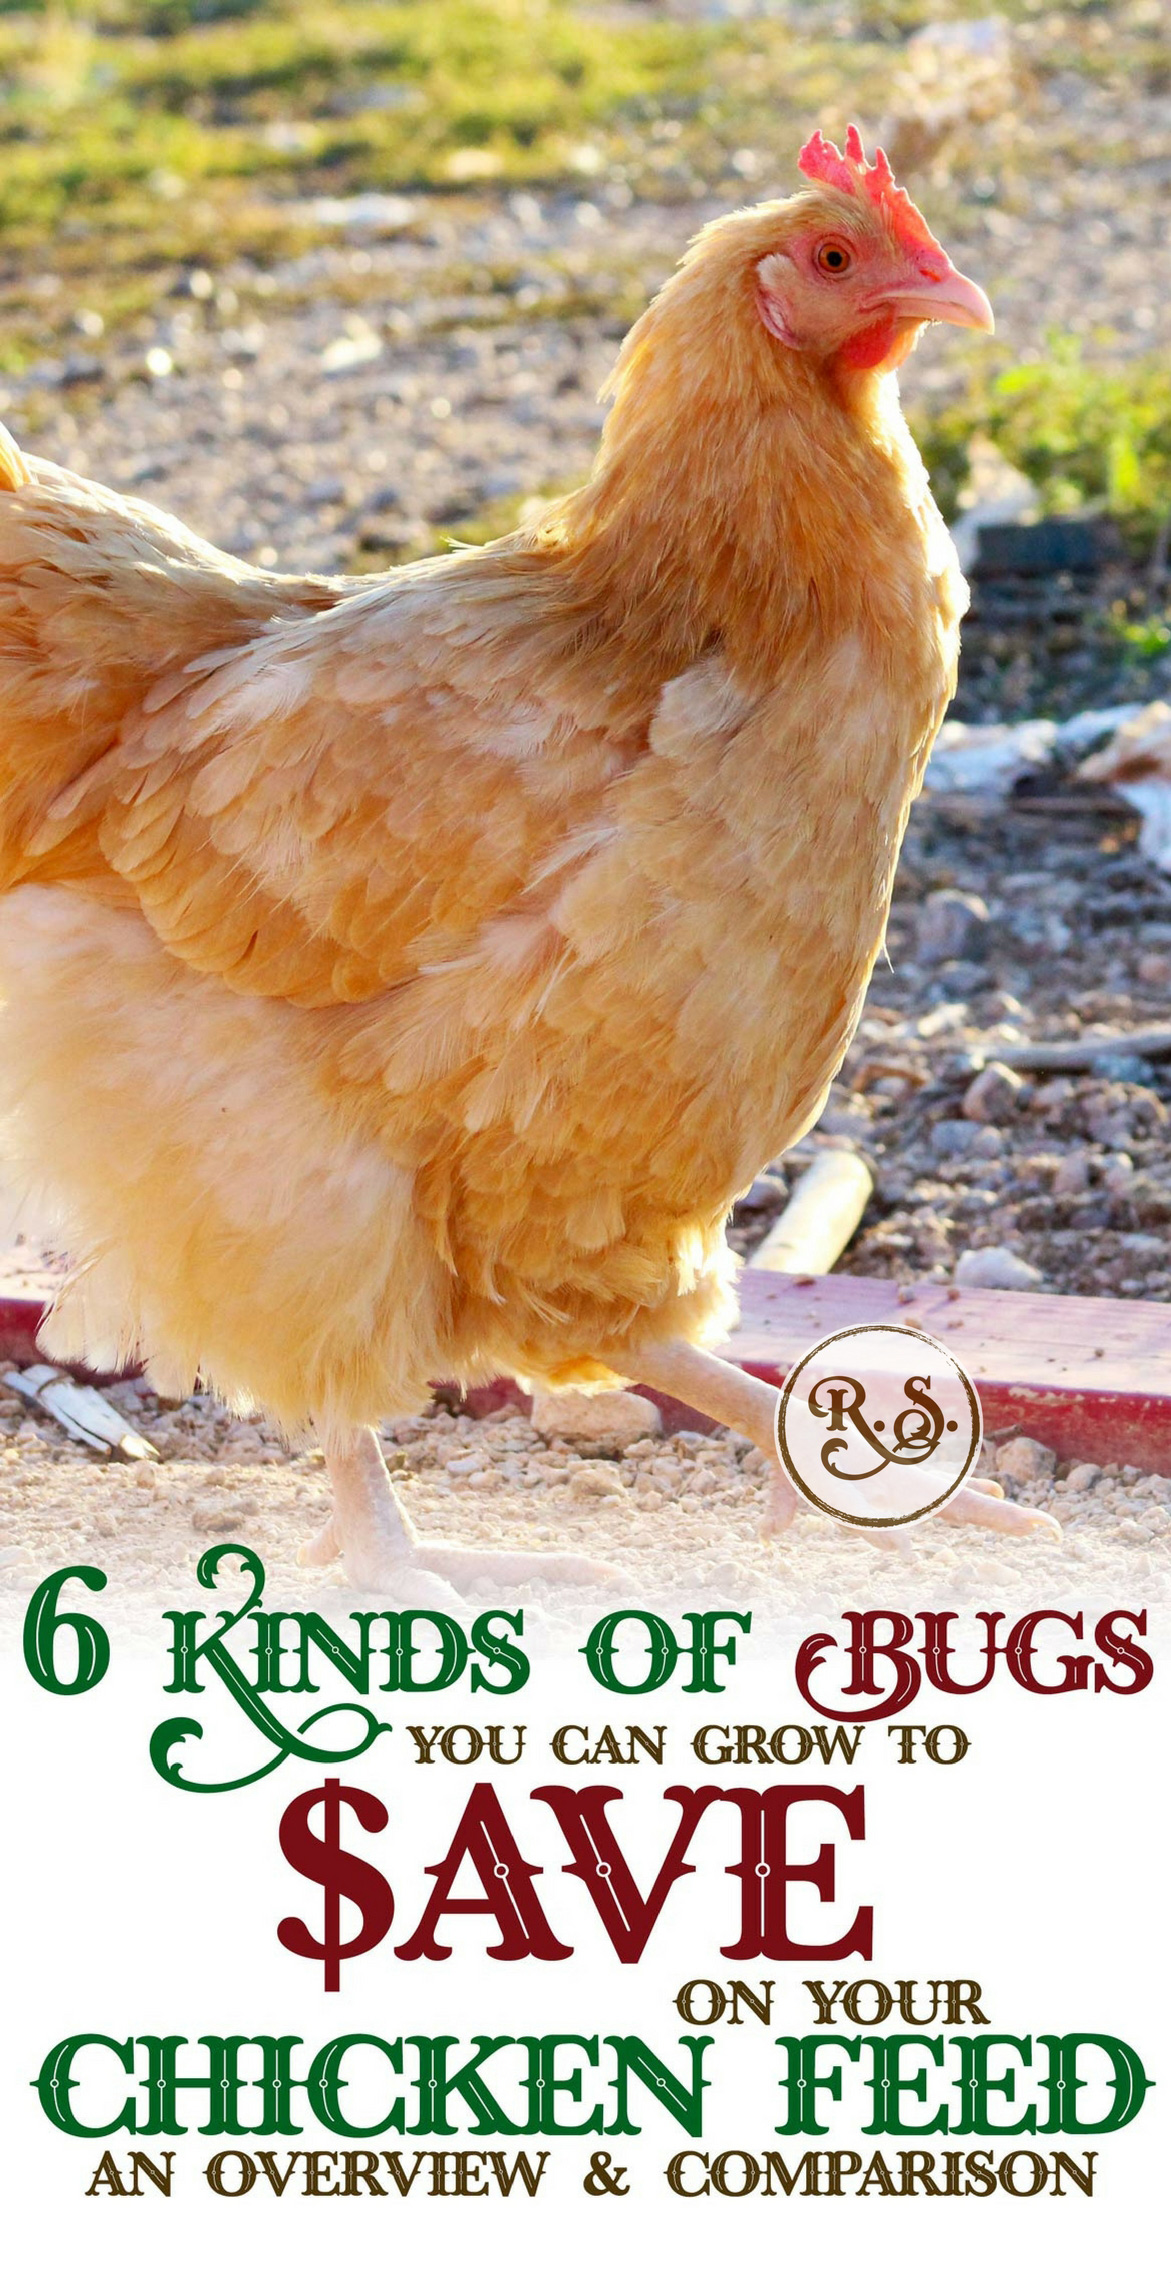 Cut your chicken feed bill by growing bugs. Here's an overview to help you decide which bugs are best for your chickens. Be more self-sufficient by raising your own chicken food.